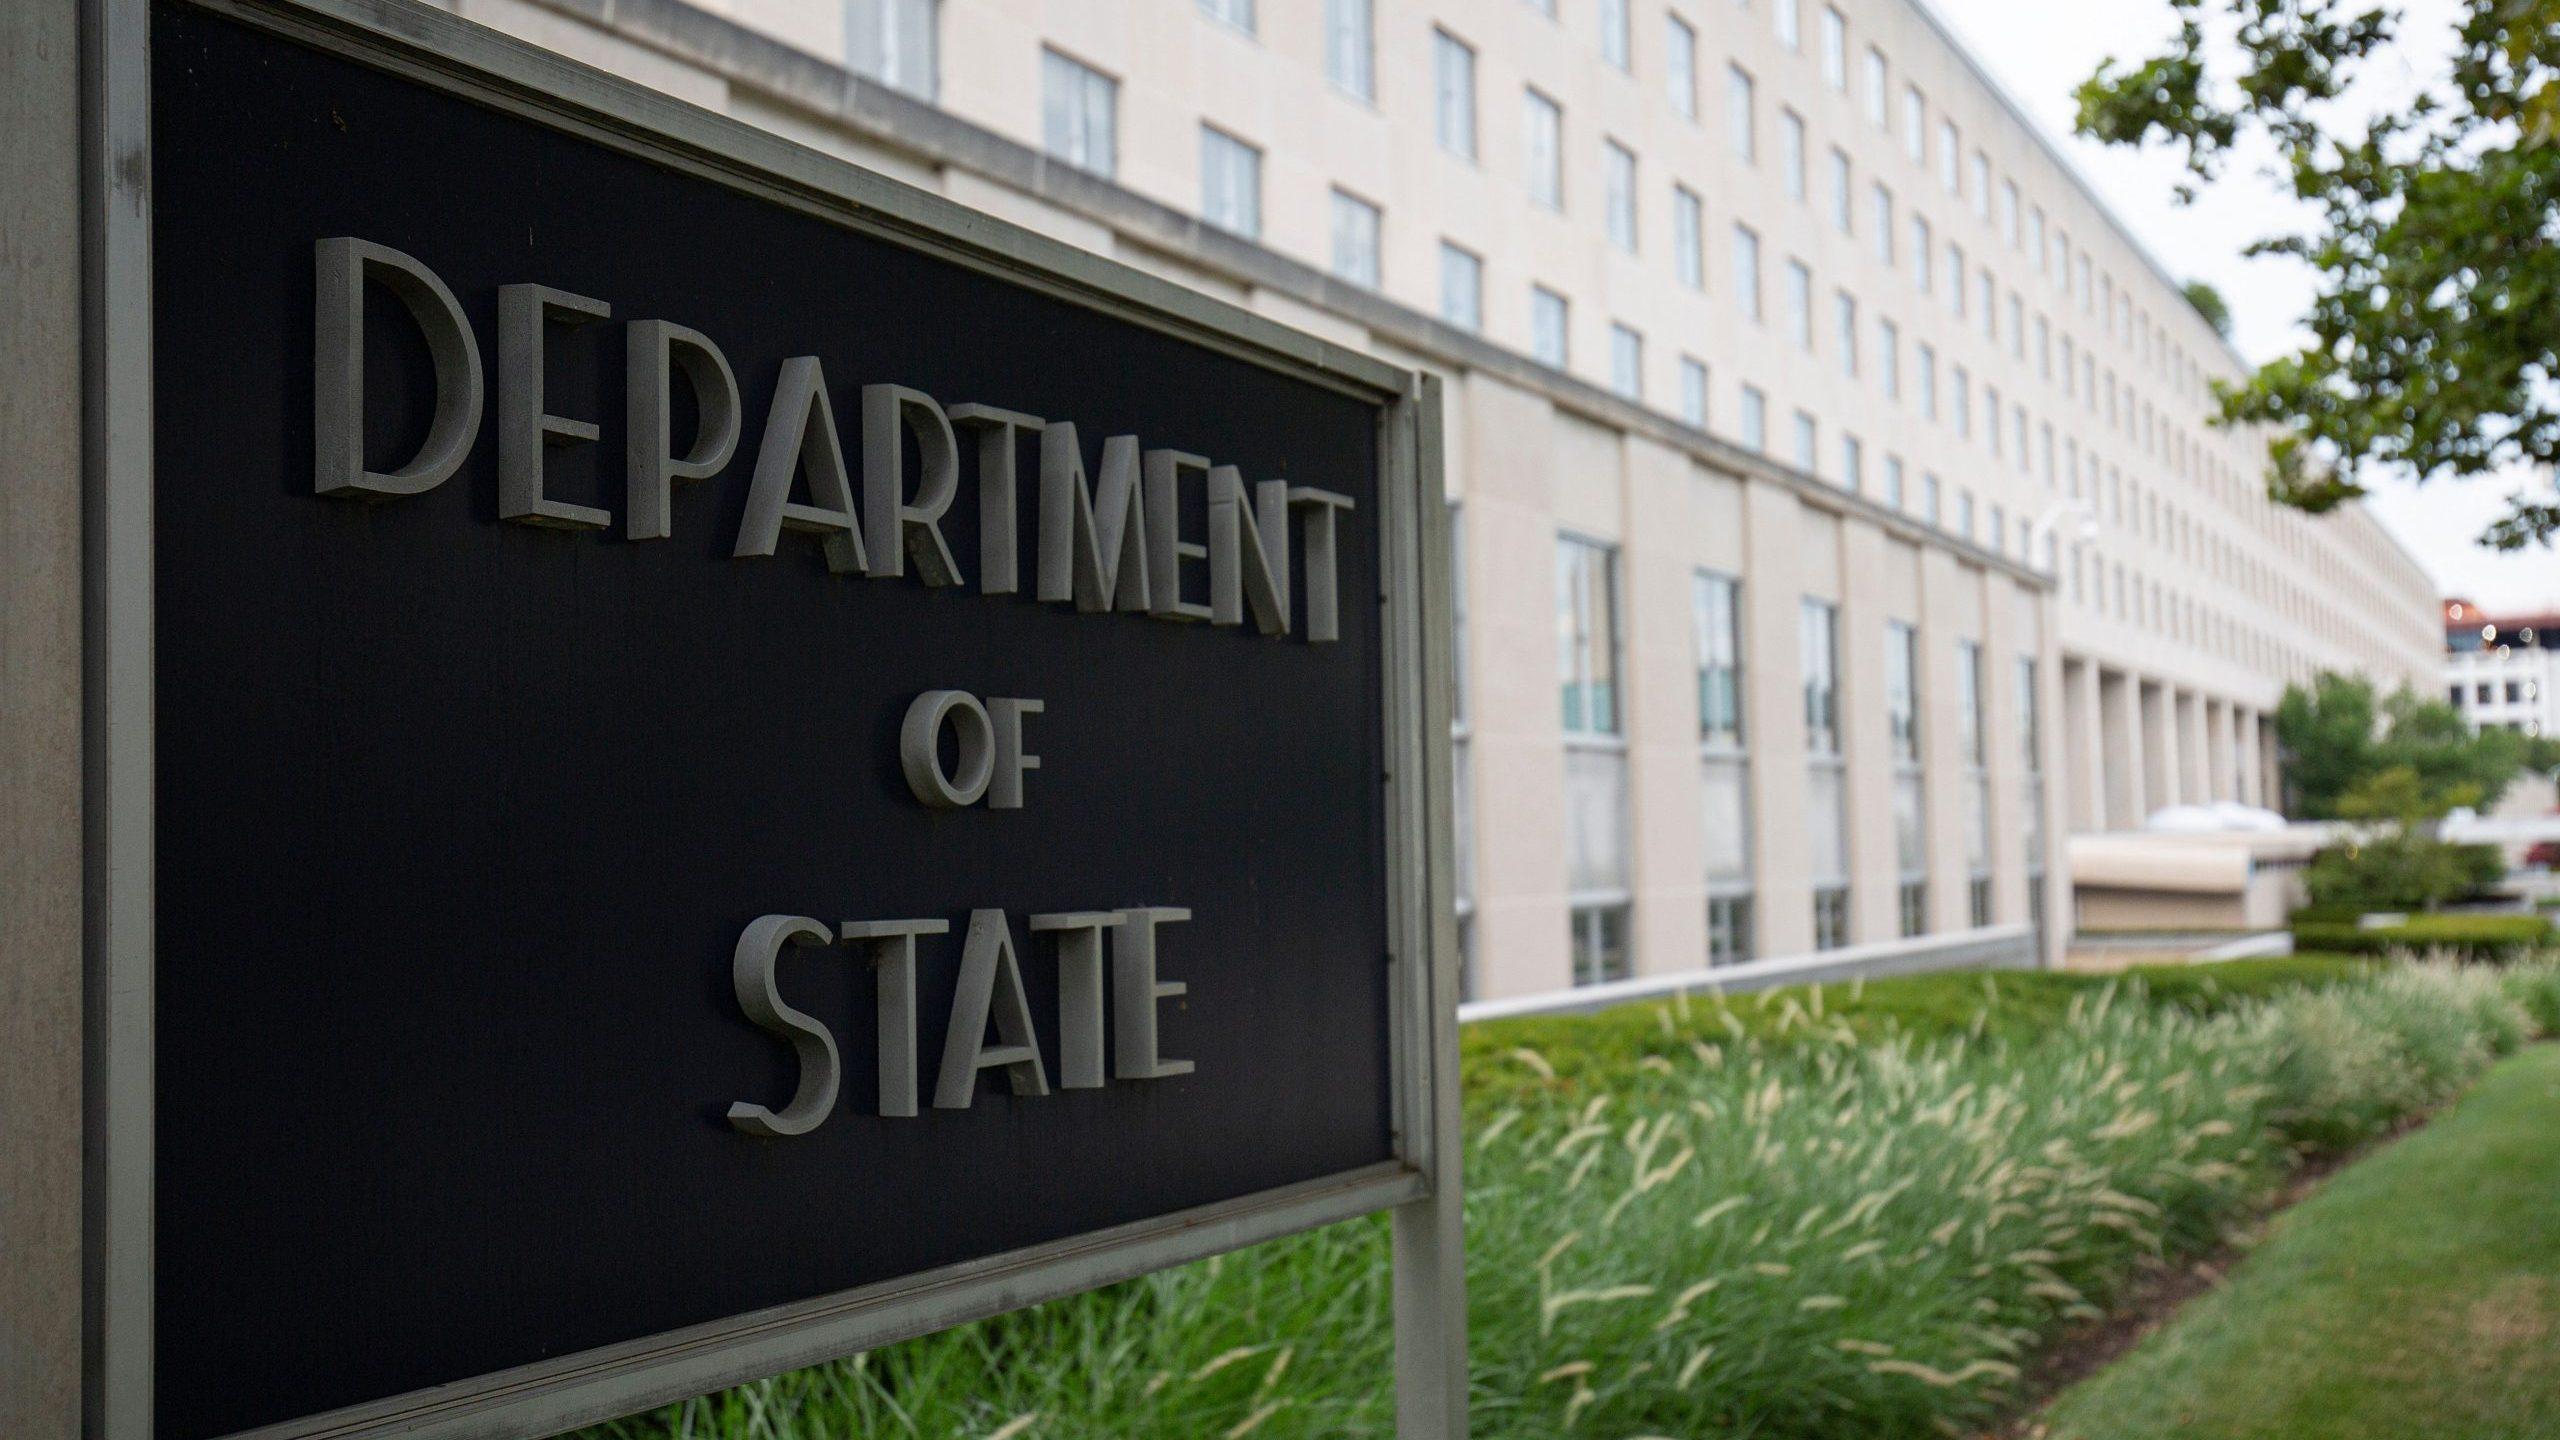 The U.S. Department of State building is seen in Washington, D.C., on July 22, 2019. (ALASTAIR PIKE/AFP via Getty Images)